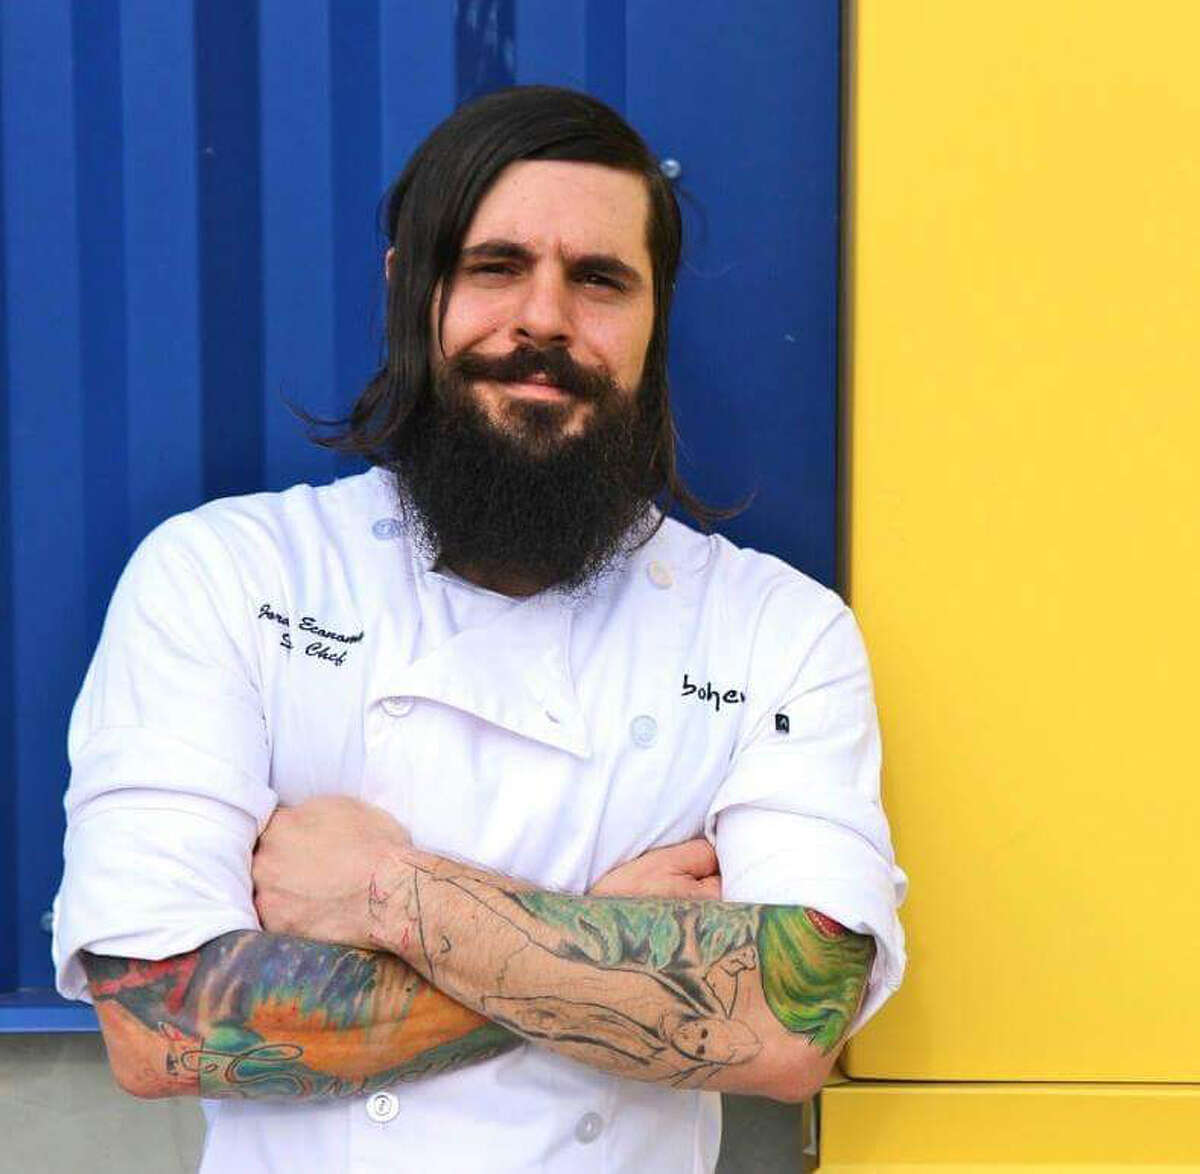 Jordan Economy is the new chef at the Oyster Bar at Prohibition.